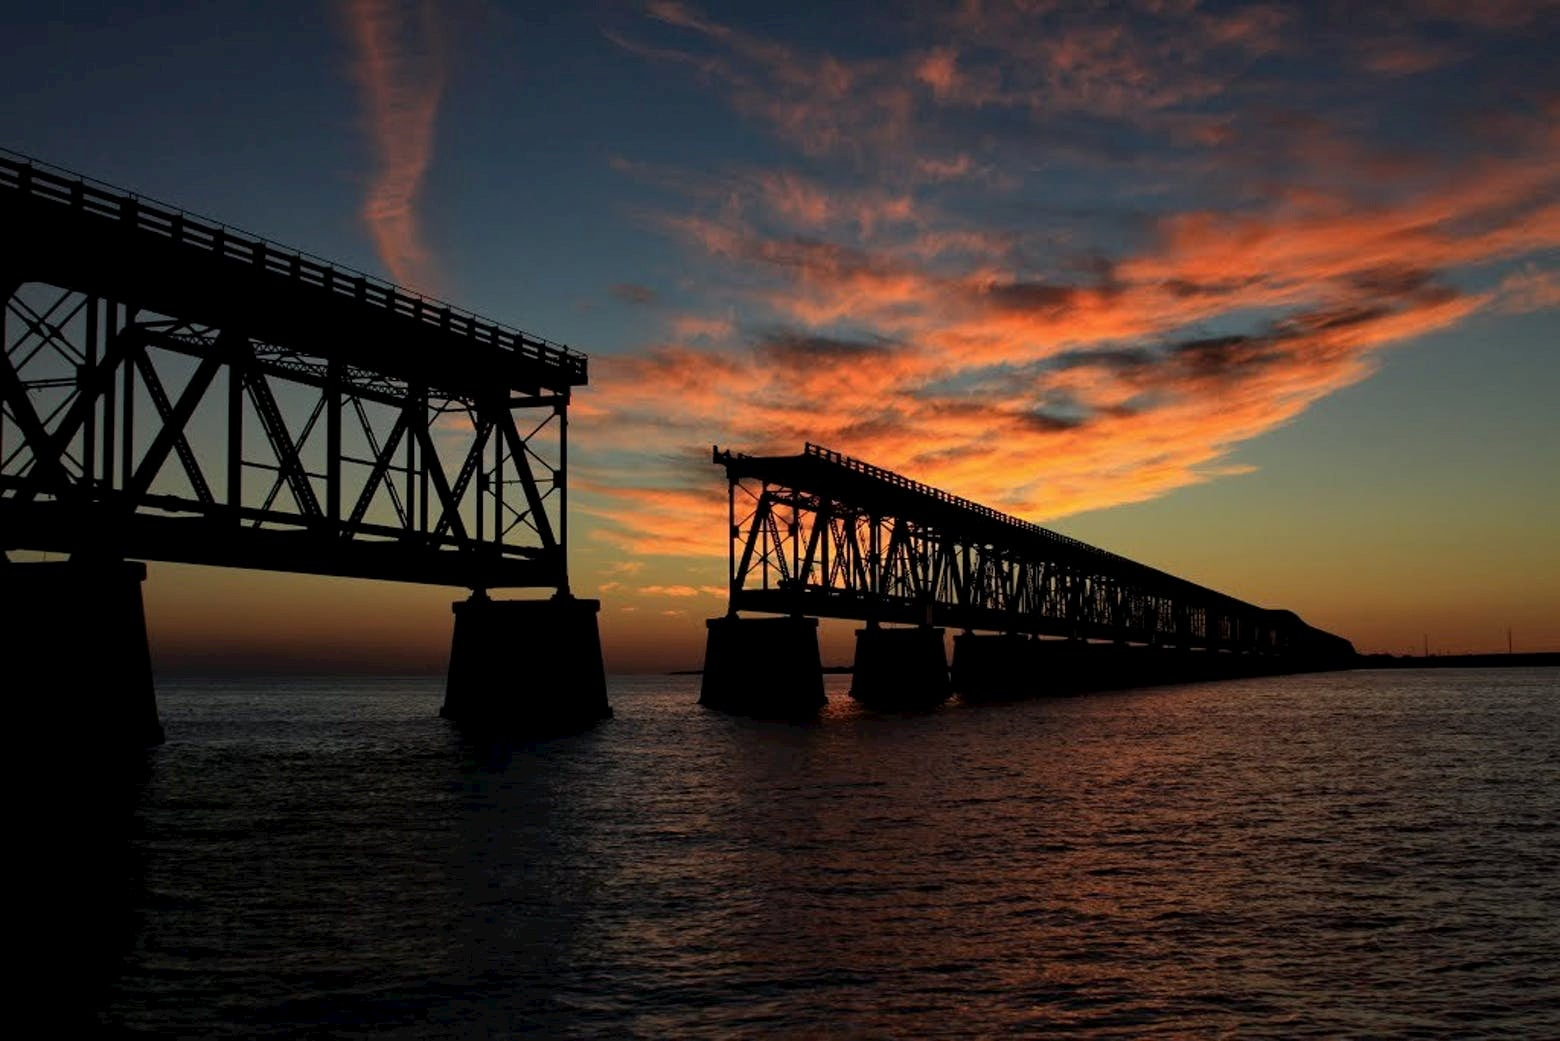 Silhouette of a bridge over the ocean at sunset with pink clouds.